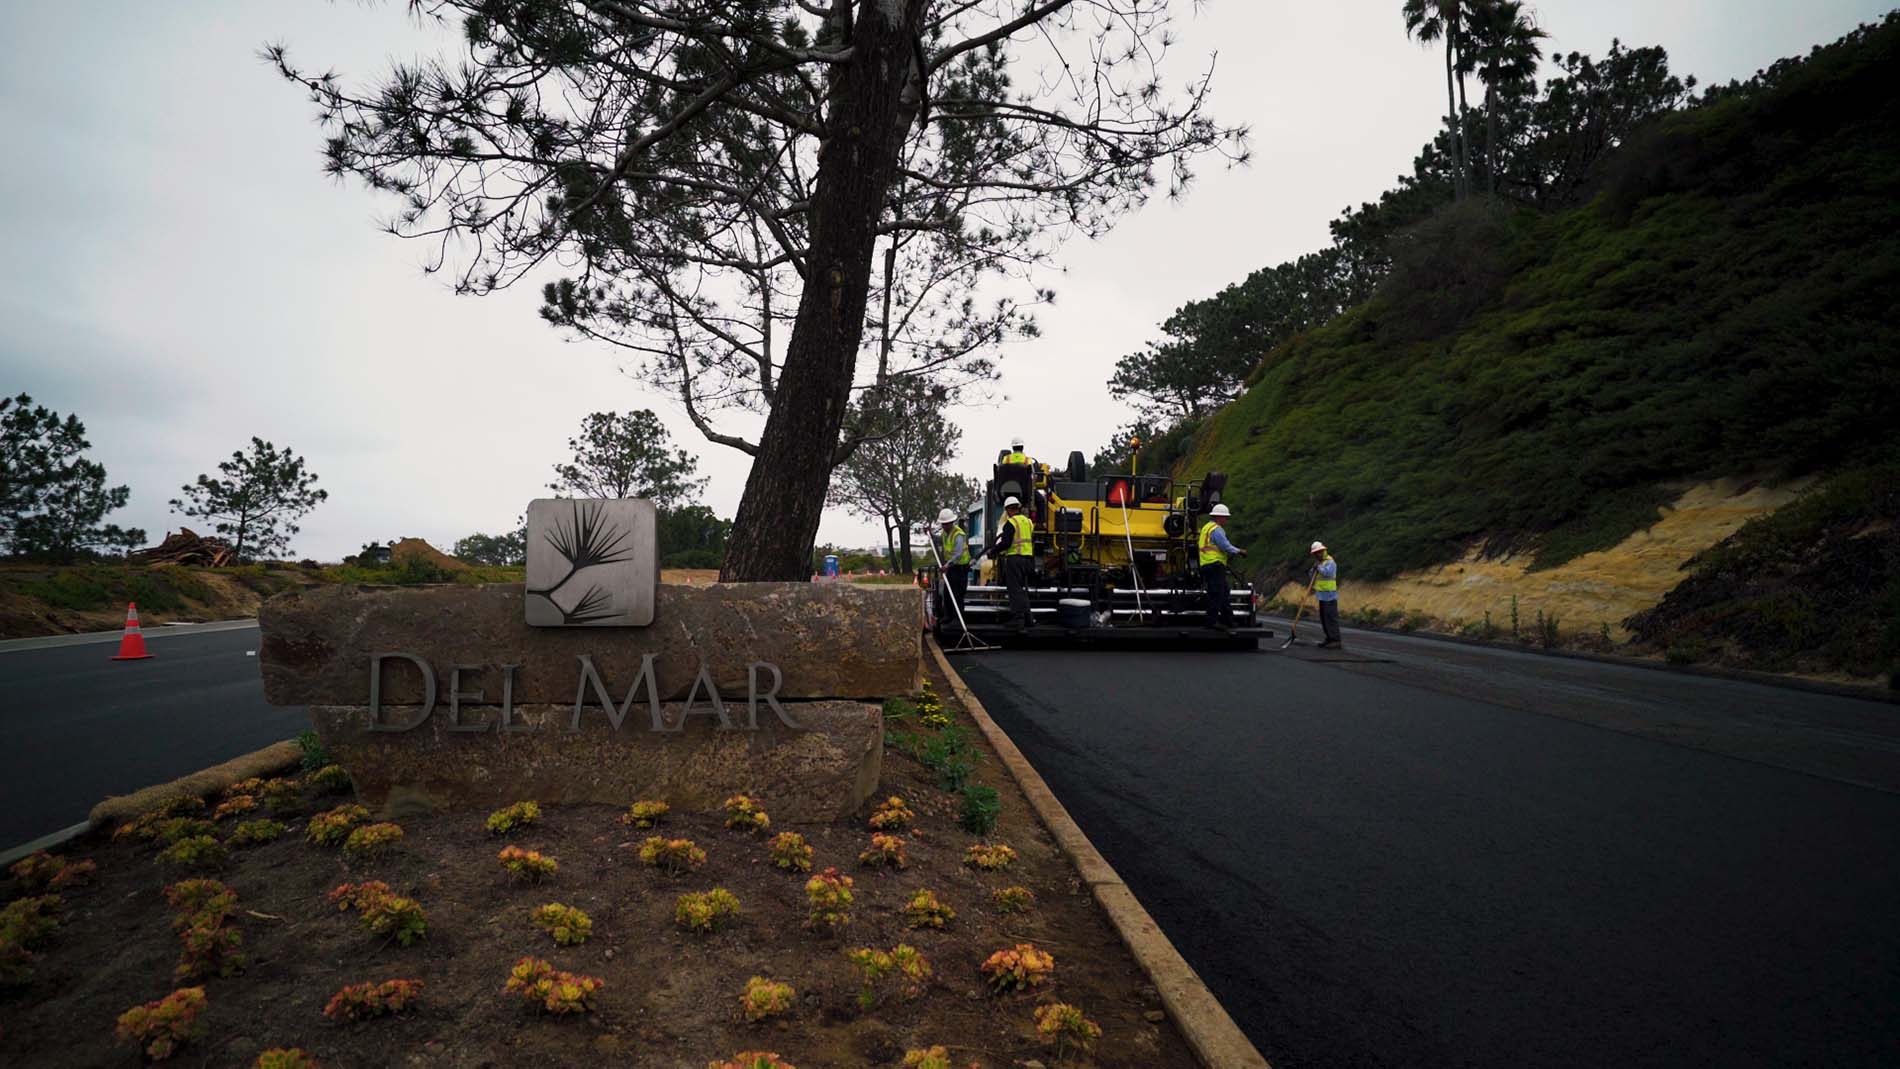 Paving pics  Del Mar Sign